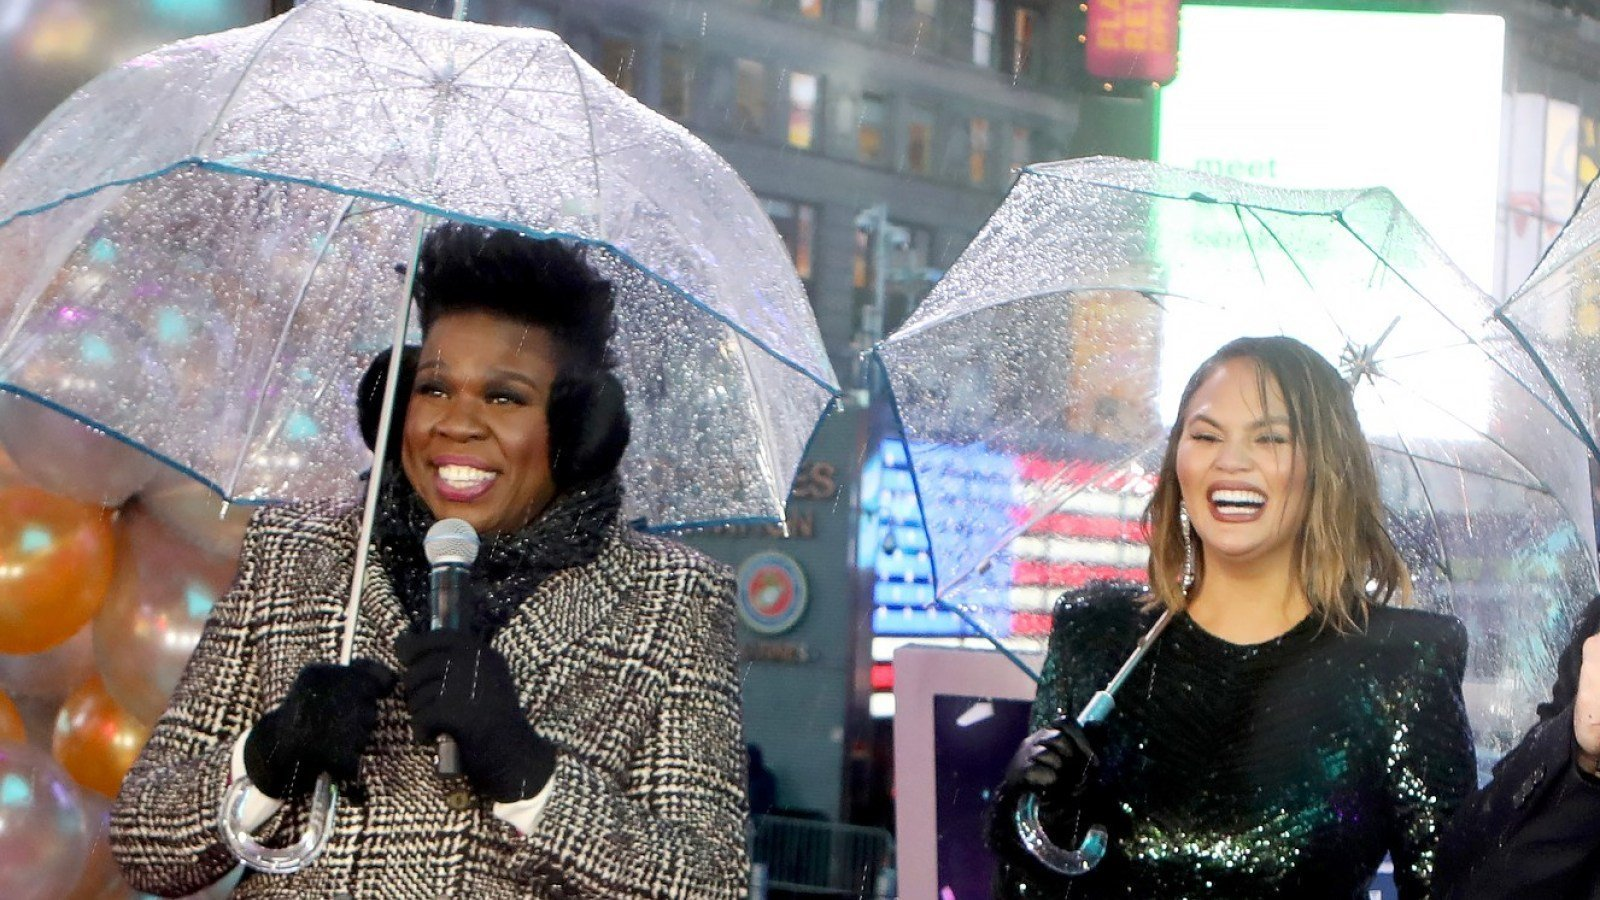 Chrissy Teigen Takes Umbrella To The Eyeball During New Year's Eve Live Broadcast But Shakes It Off Like A Champ